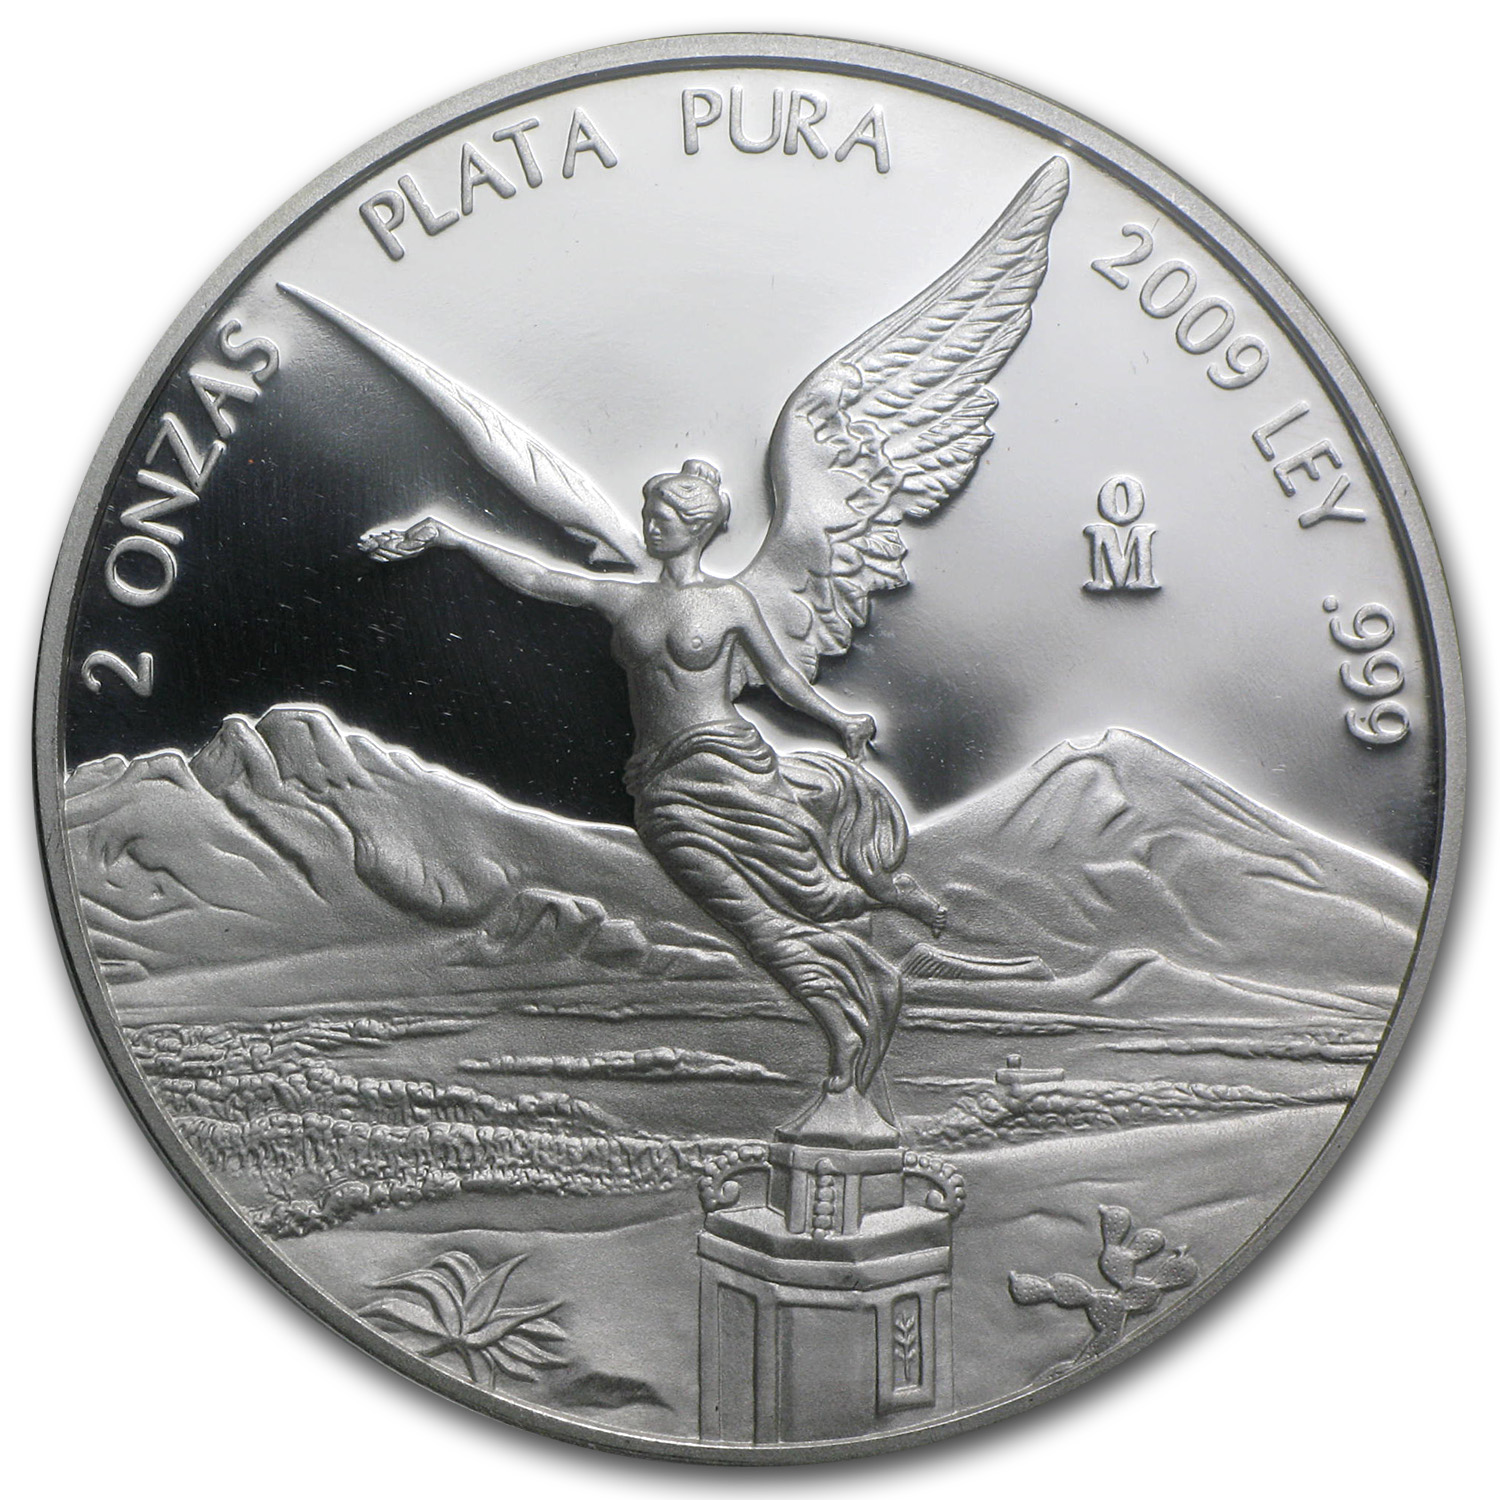 2009 Mexico 2 oz Silver Libertad Proof (In Capsule)